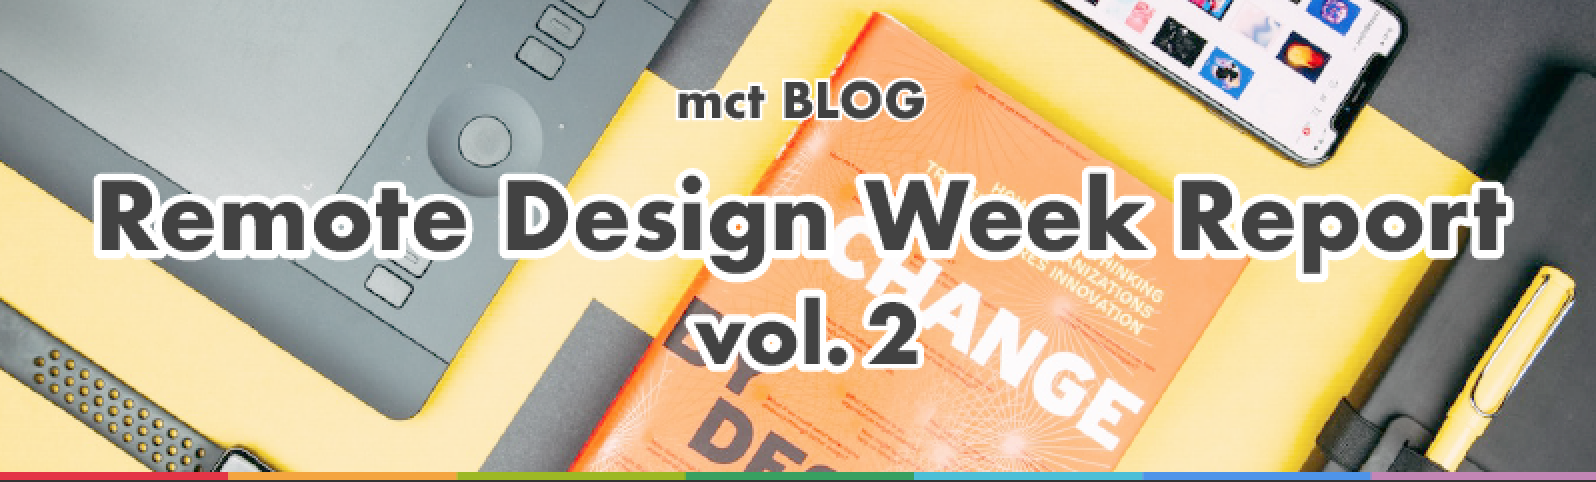 remote_design_week_vol2